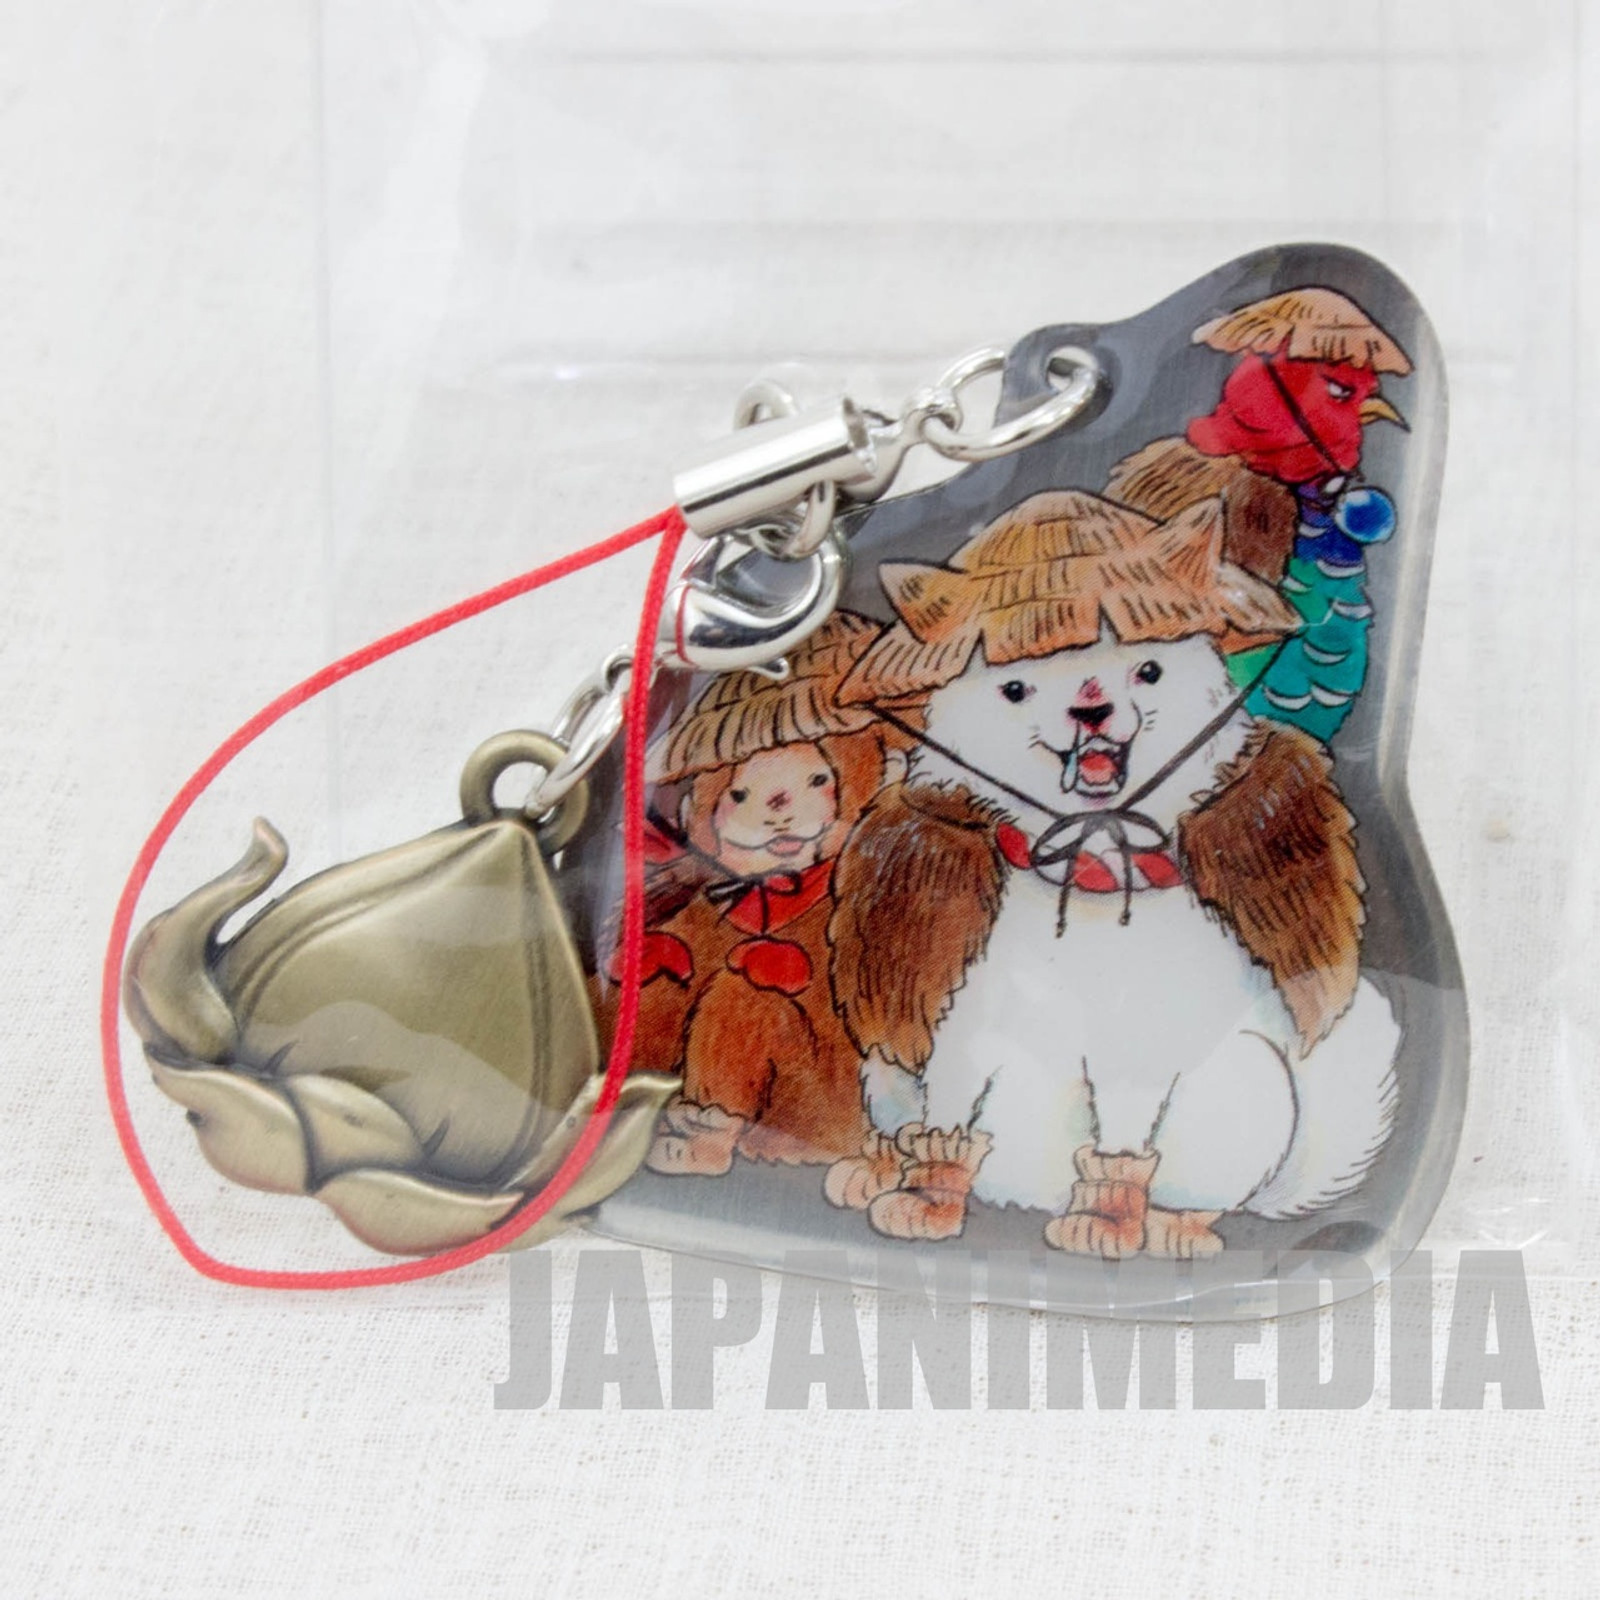 Hozuki no Reitetsu Shiro Dog Metal Plate Mascot Strap JAPAN ANIME MANGA